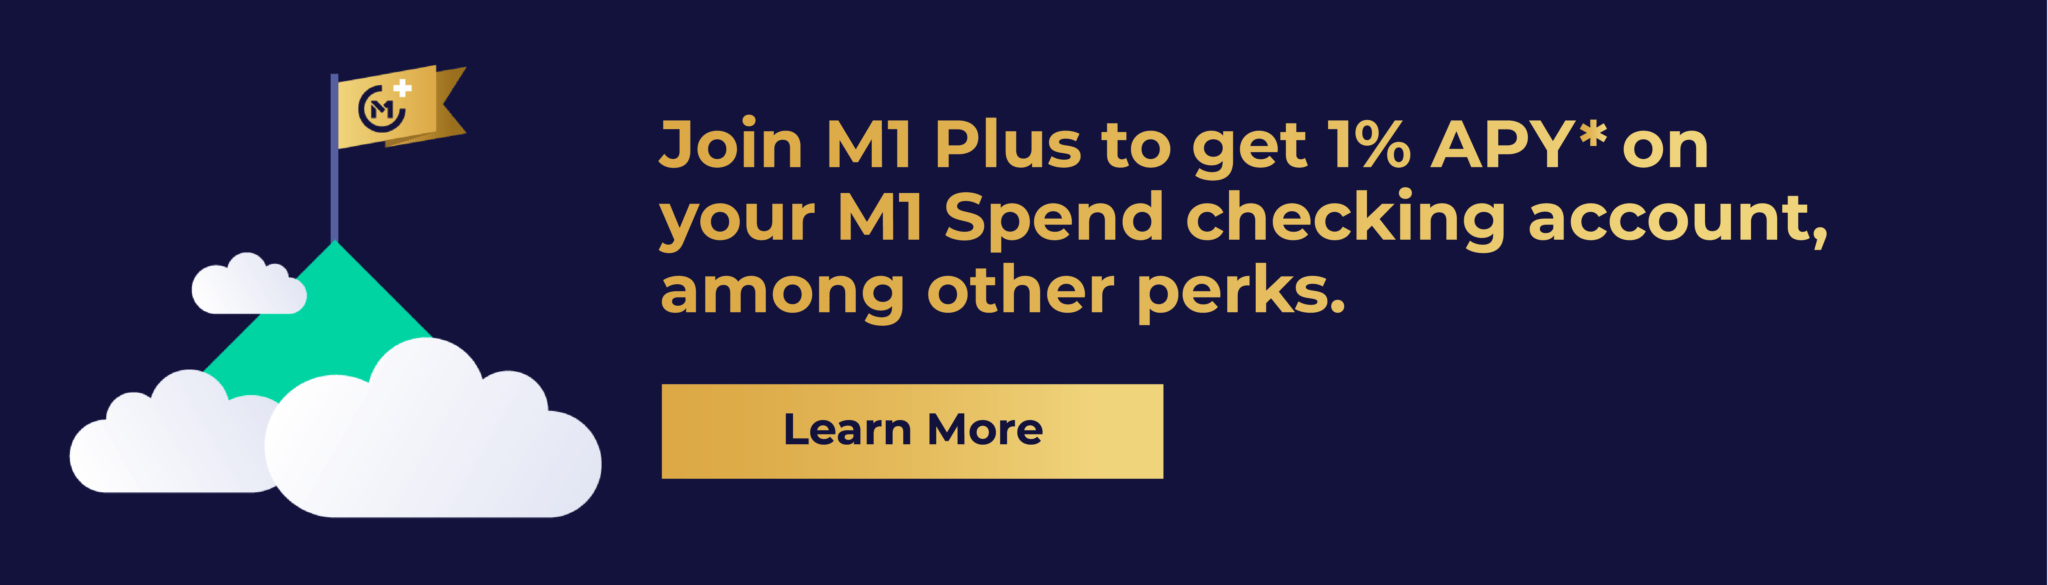 Join M1 Plus to get 1% APY* on your M1 Spend checking account, among other perks.